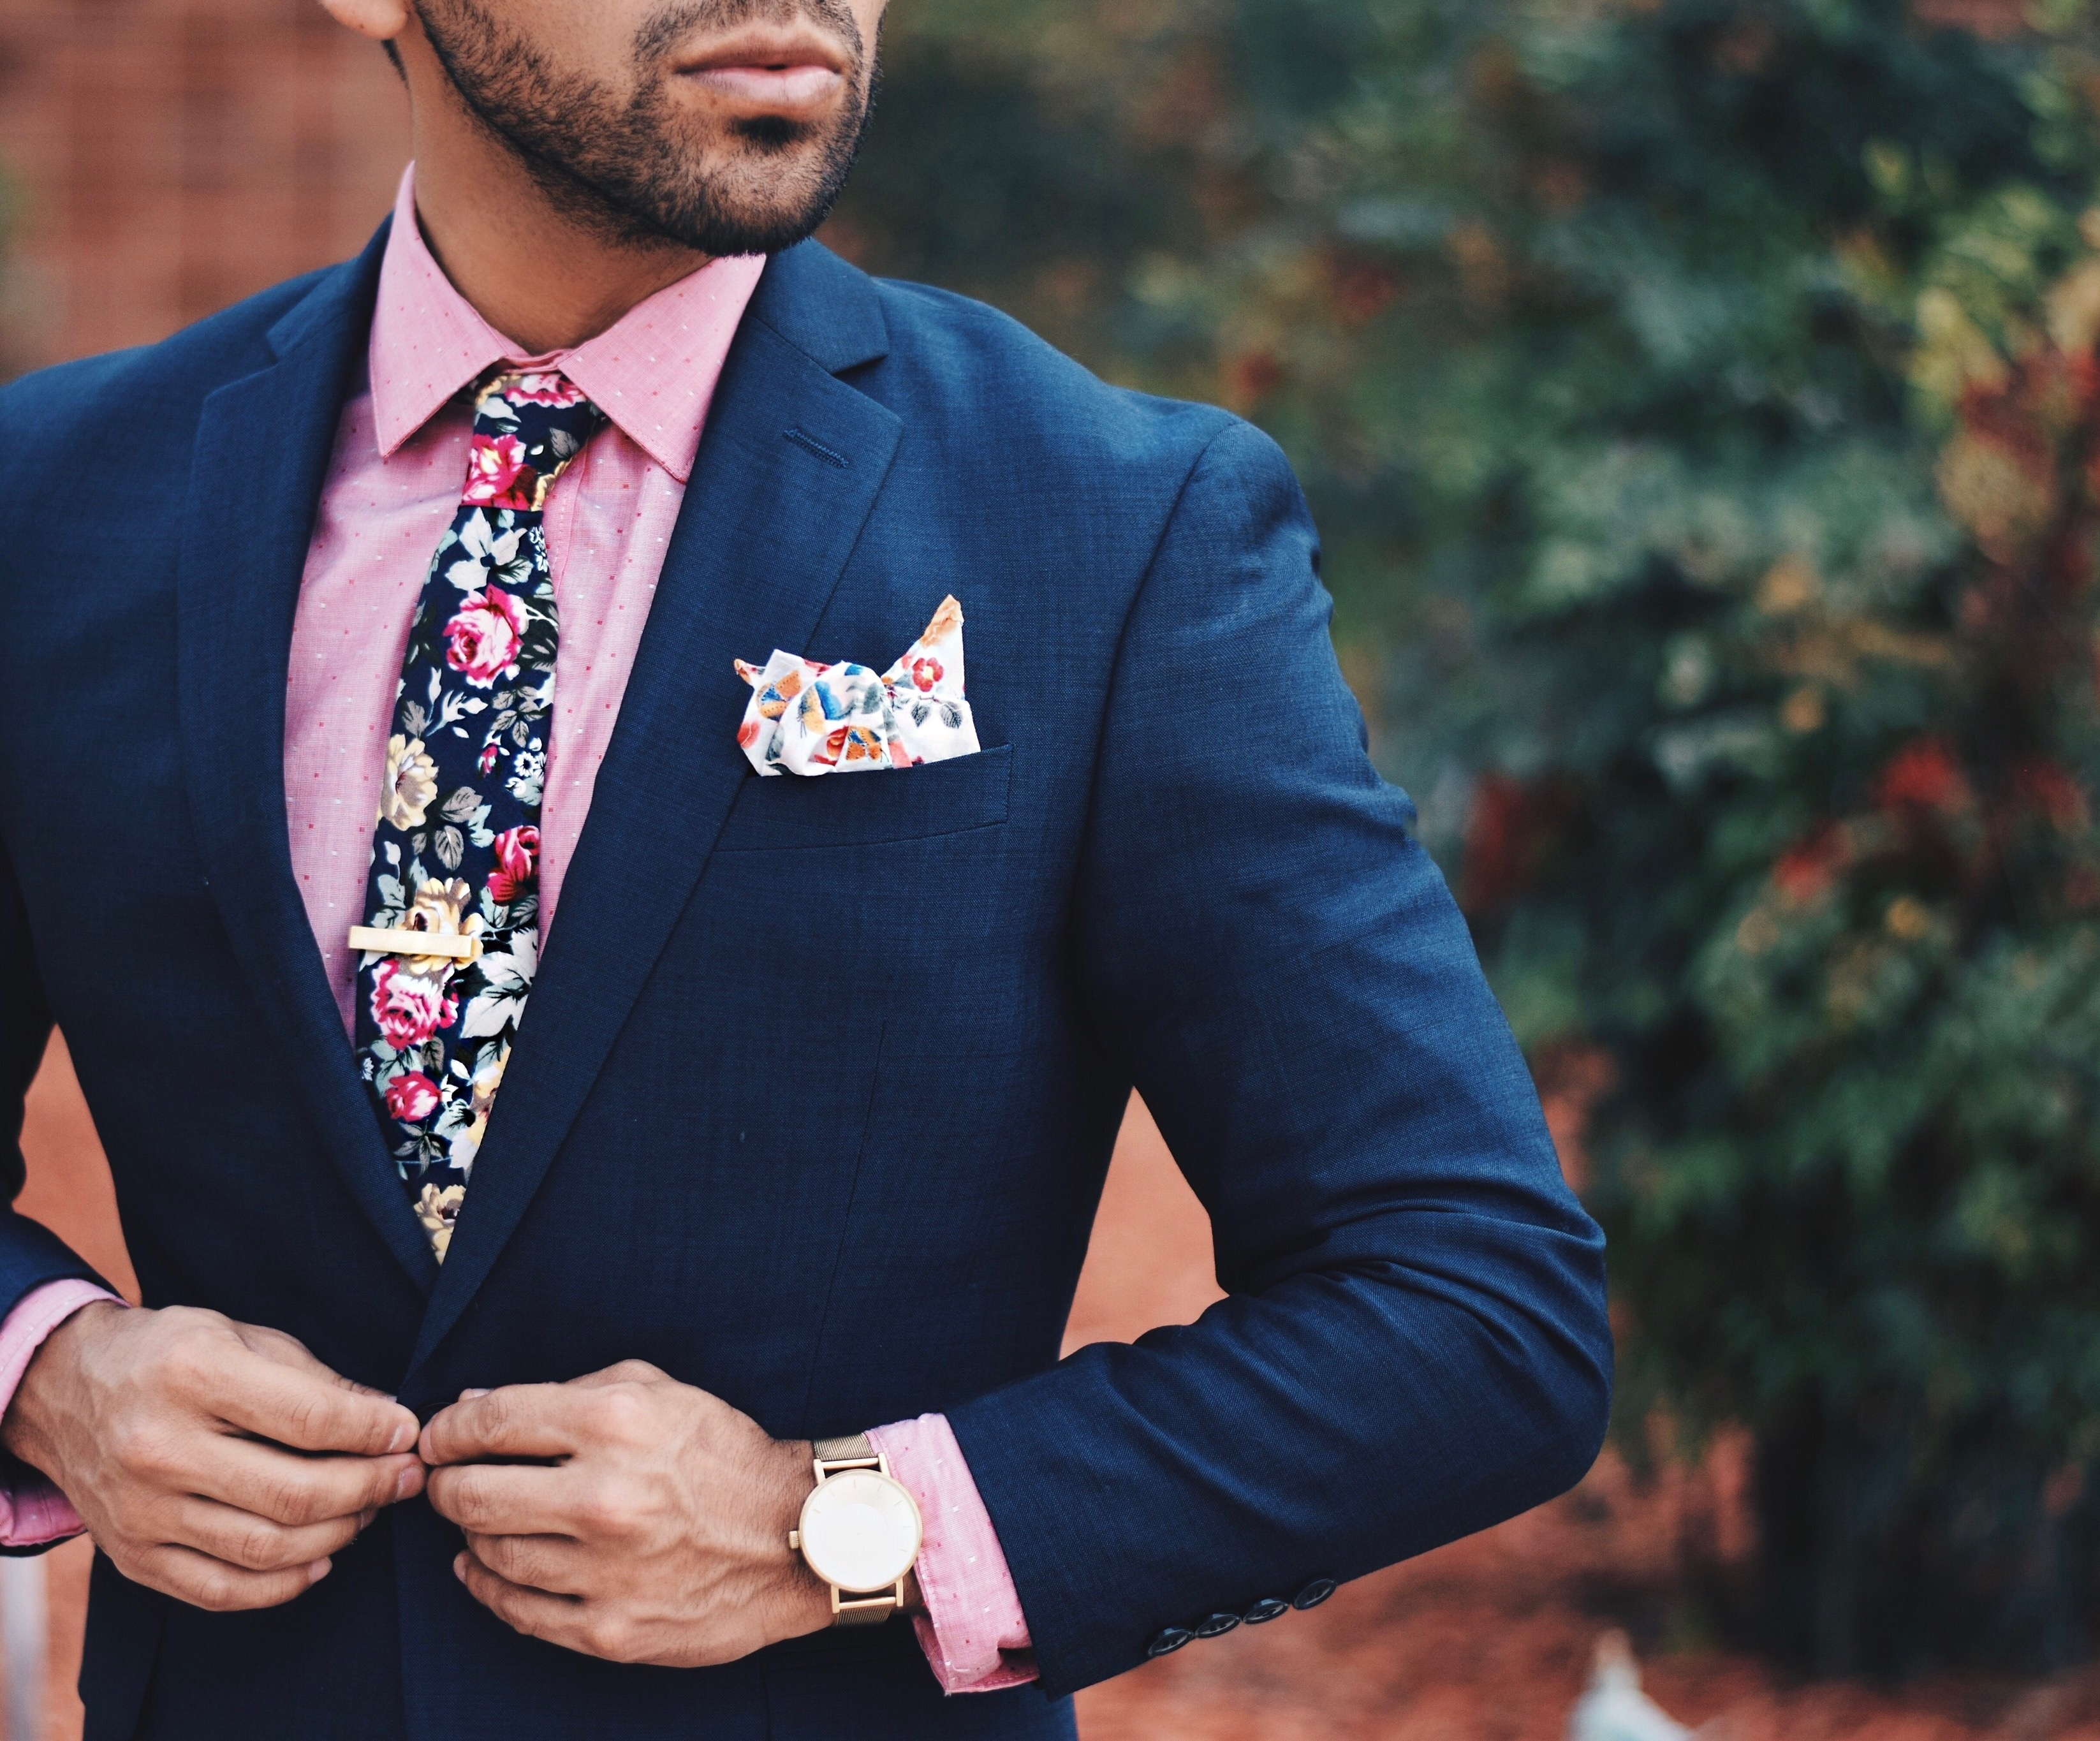 What Colour Tie Should I Wear With A Navy Blue Suit And A Pink Shirt